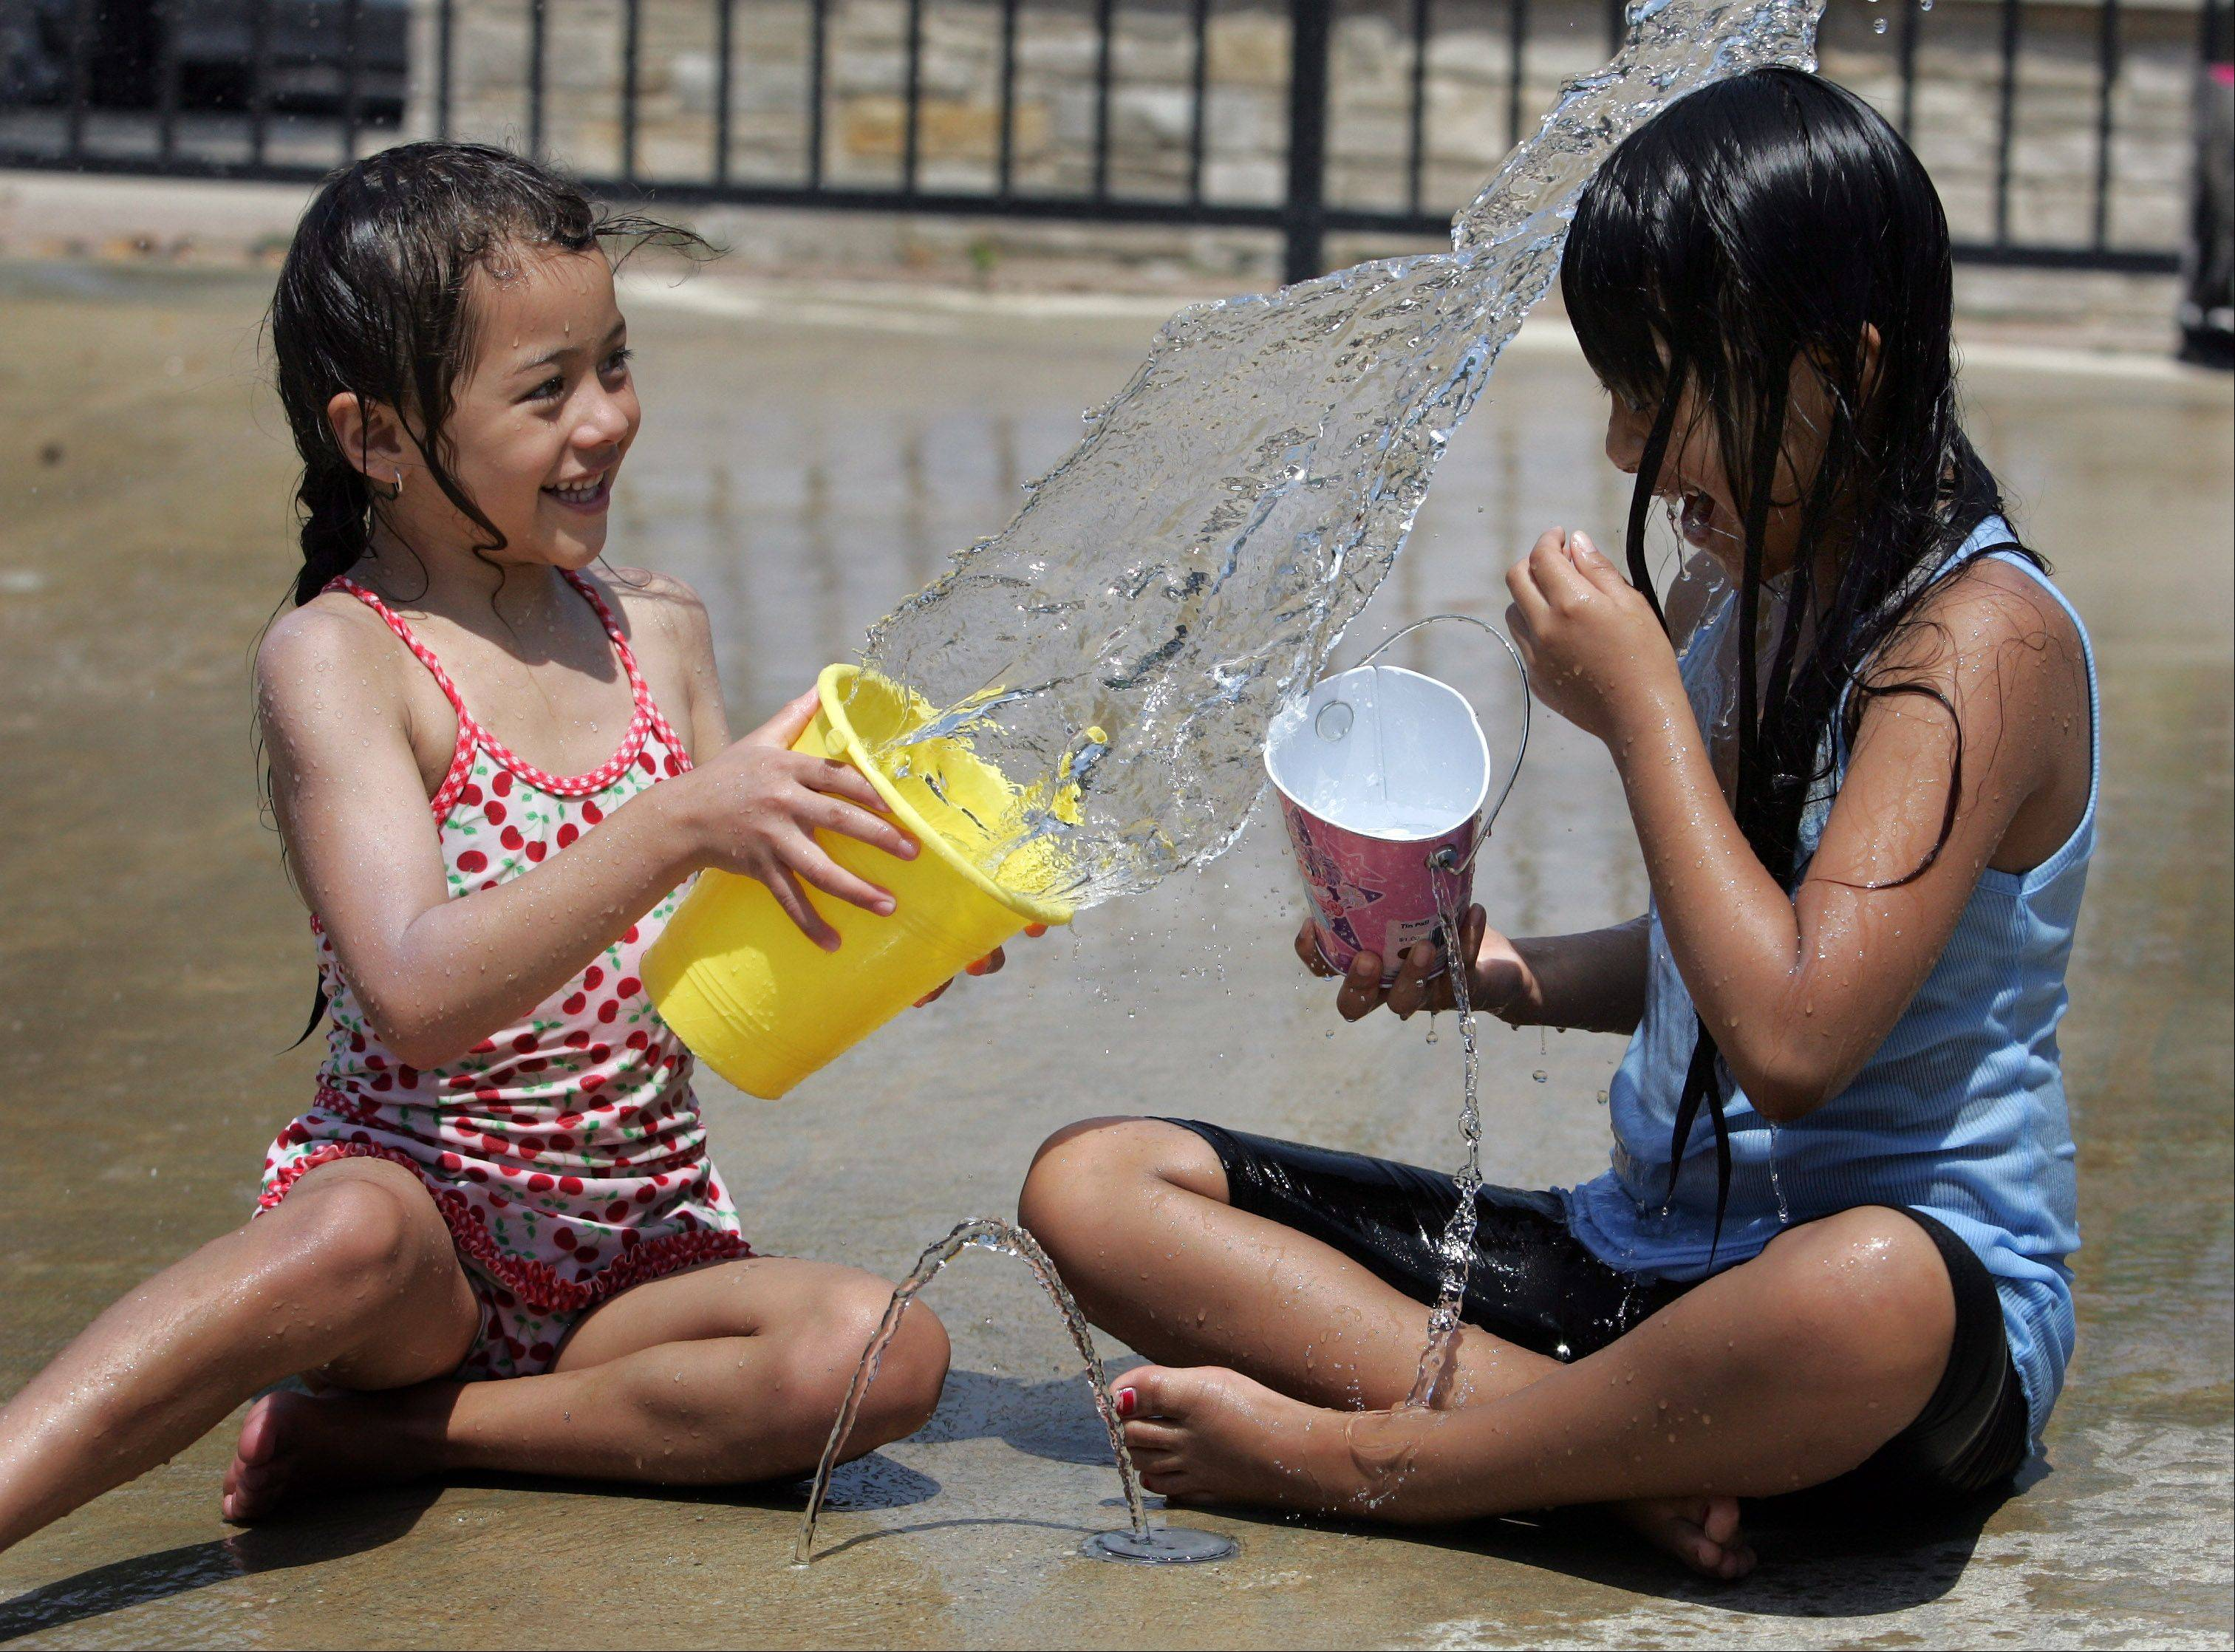 Jennifer Valois, 6, left, splashes Jessica Valois, 8, with water. The cousins, both of Villa Park, were cooling off in Tuesday's heat at the Water Spray Park in Lombard.